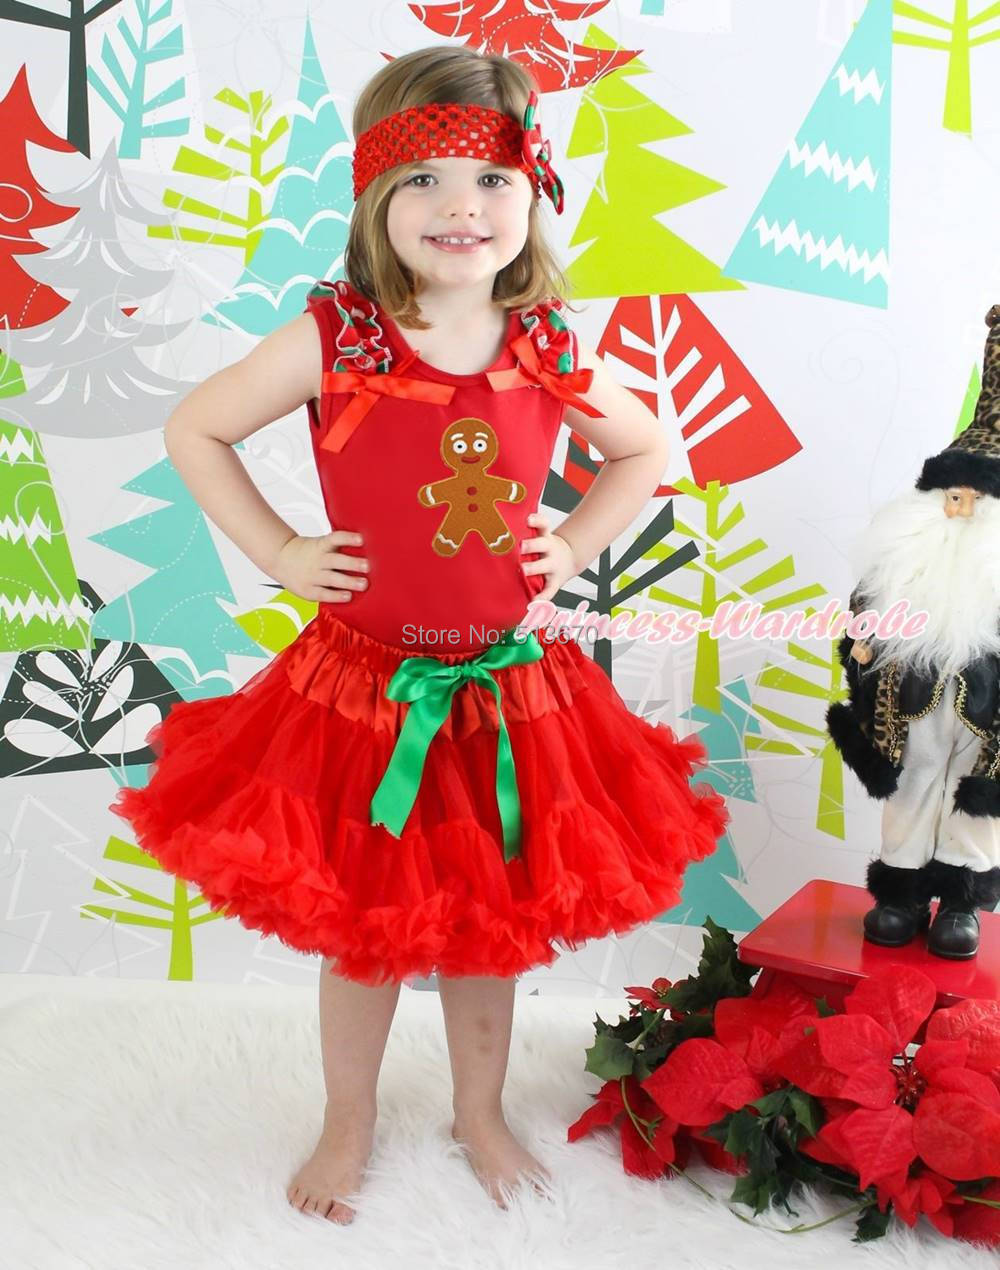 XMAS Gingerbread Red Top Shirt Red Pettiskirt Baby Girl Outfit Costume Set 1-8Y MAPSA0074 цена и фото